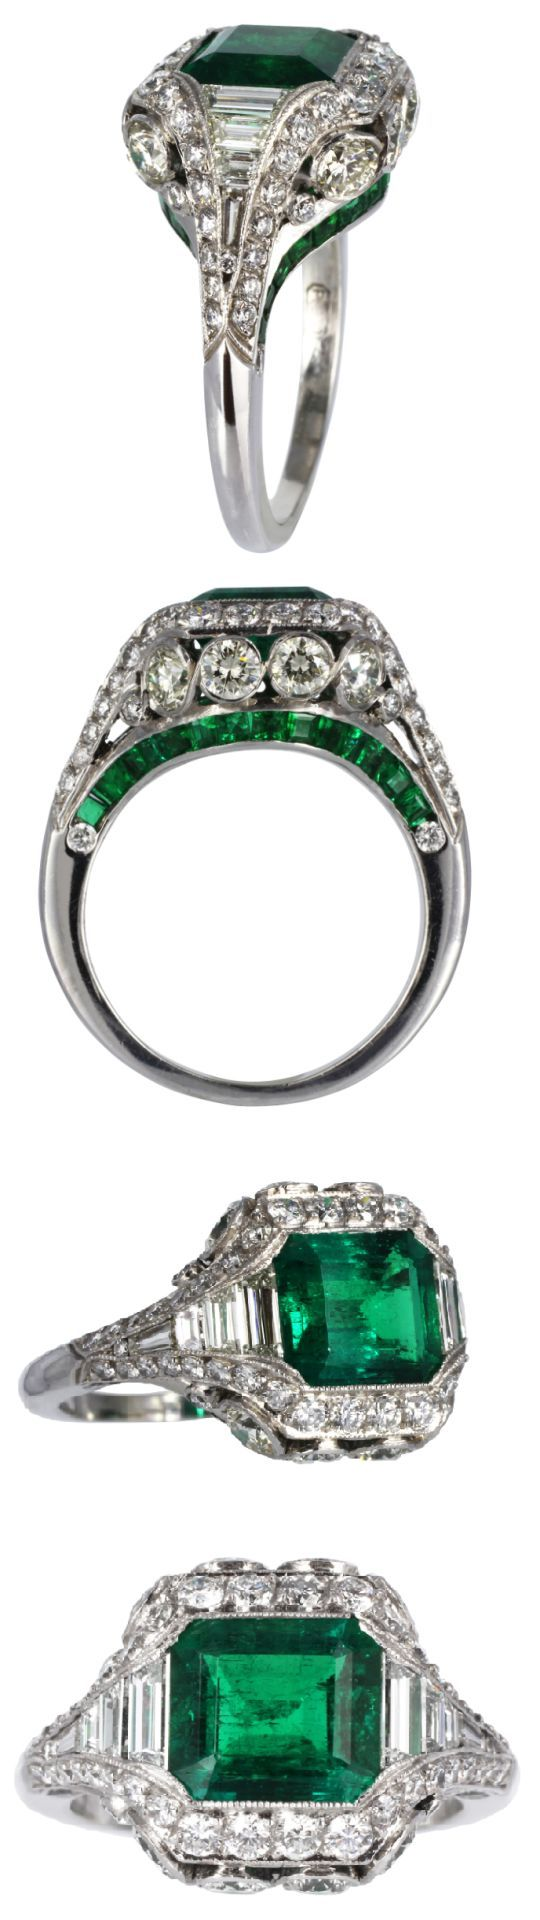 Elegant ct colom elegant ct colombian emerald u diamond ring